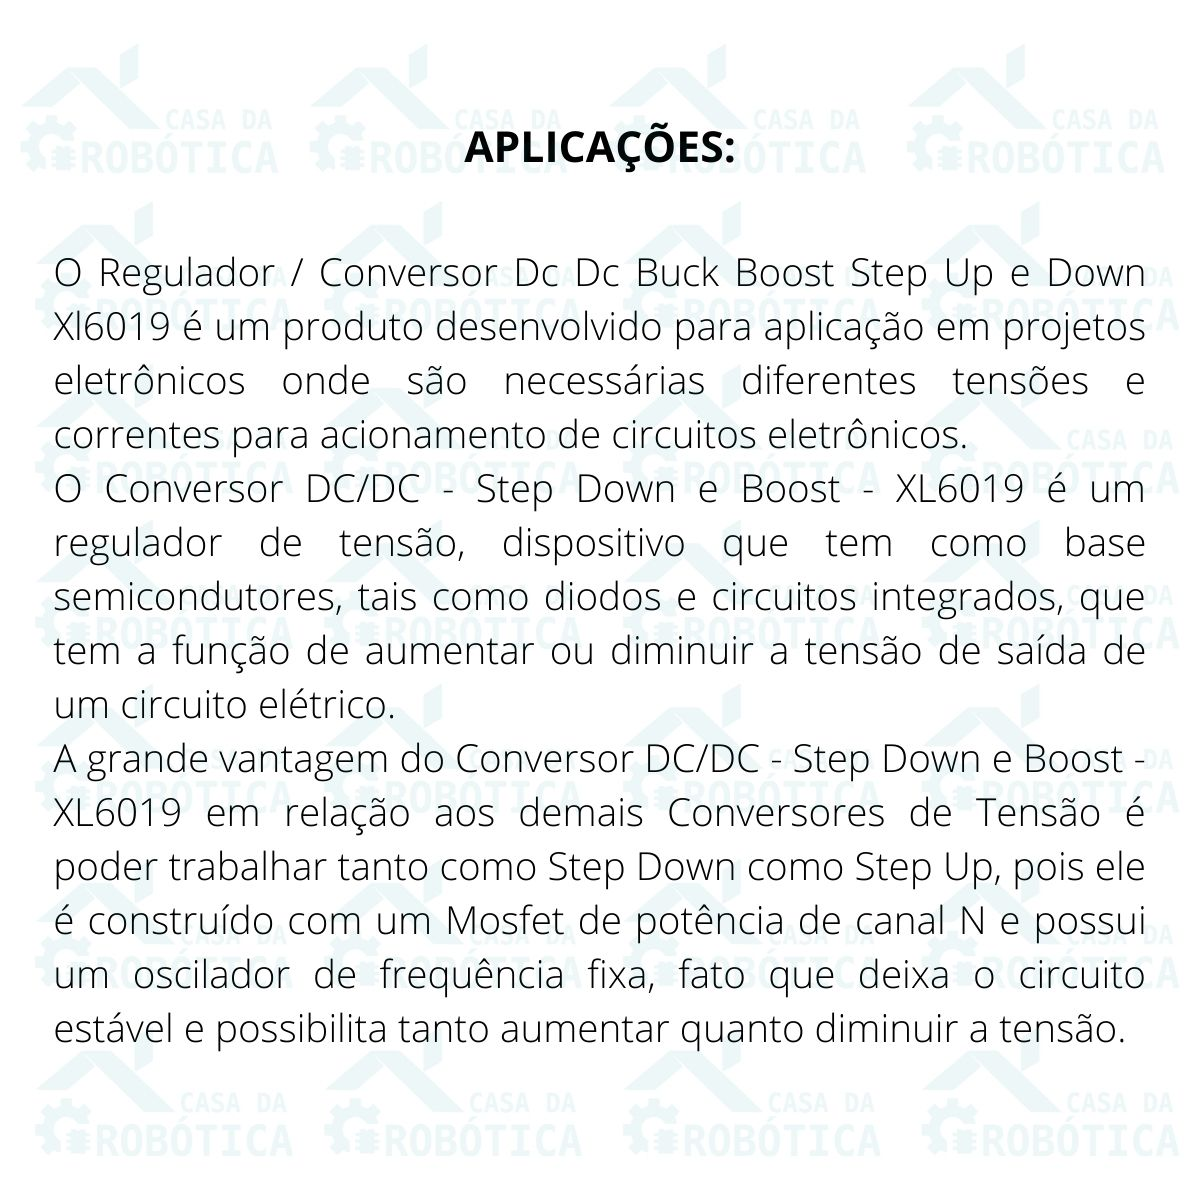 4x Conversor Regulador DC DC Buck Boost Step Up e Down Xl6019